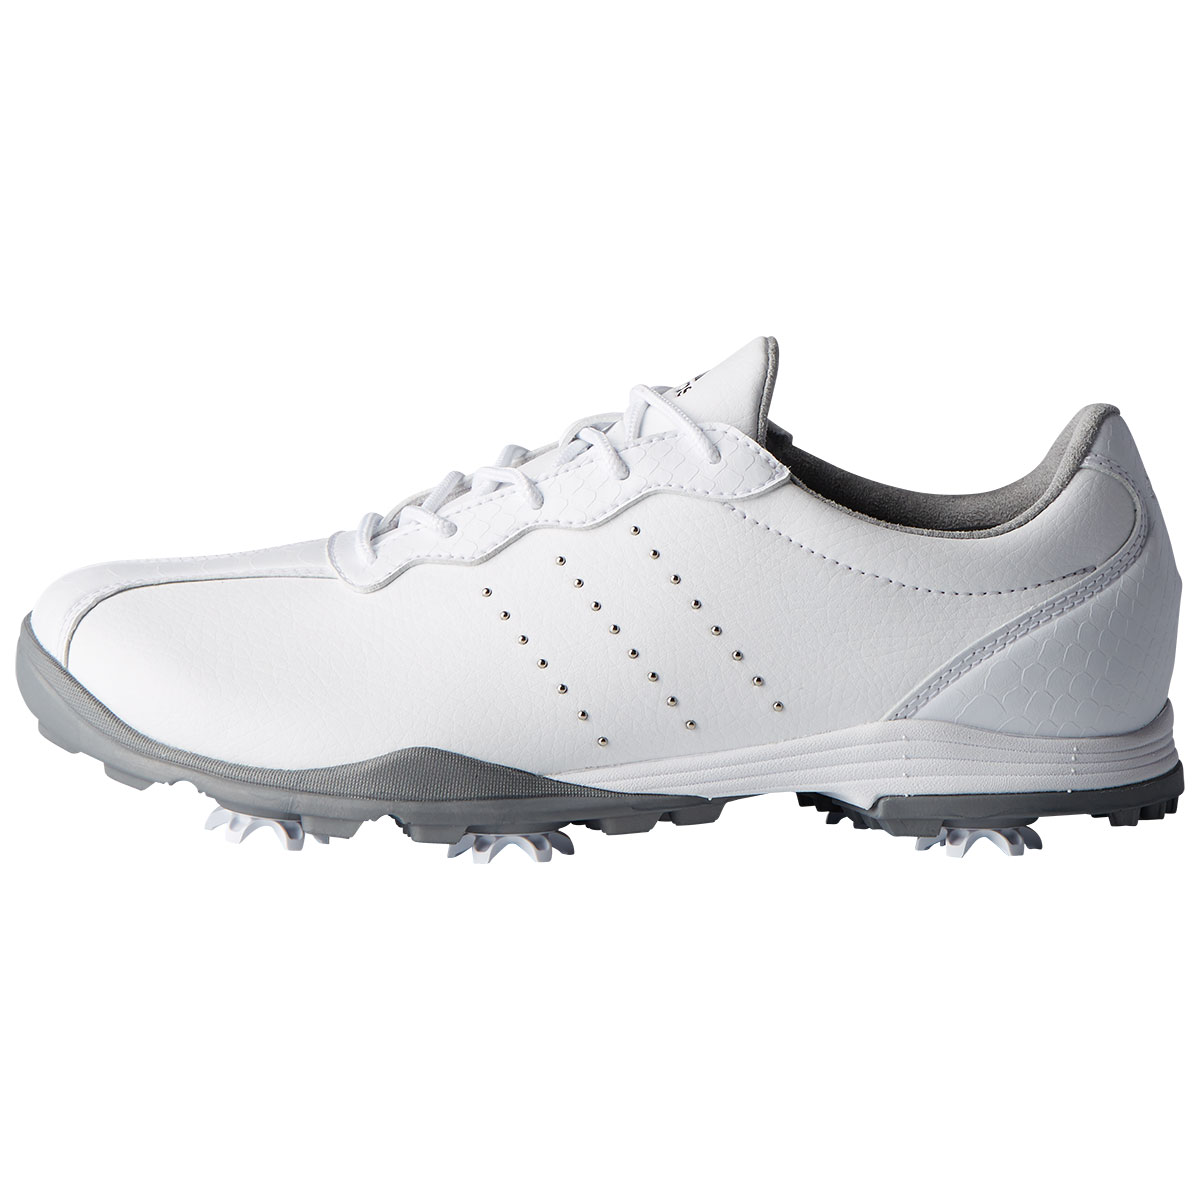 Adidas Women's Adipure DC Golf Shoe